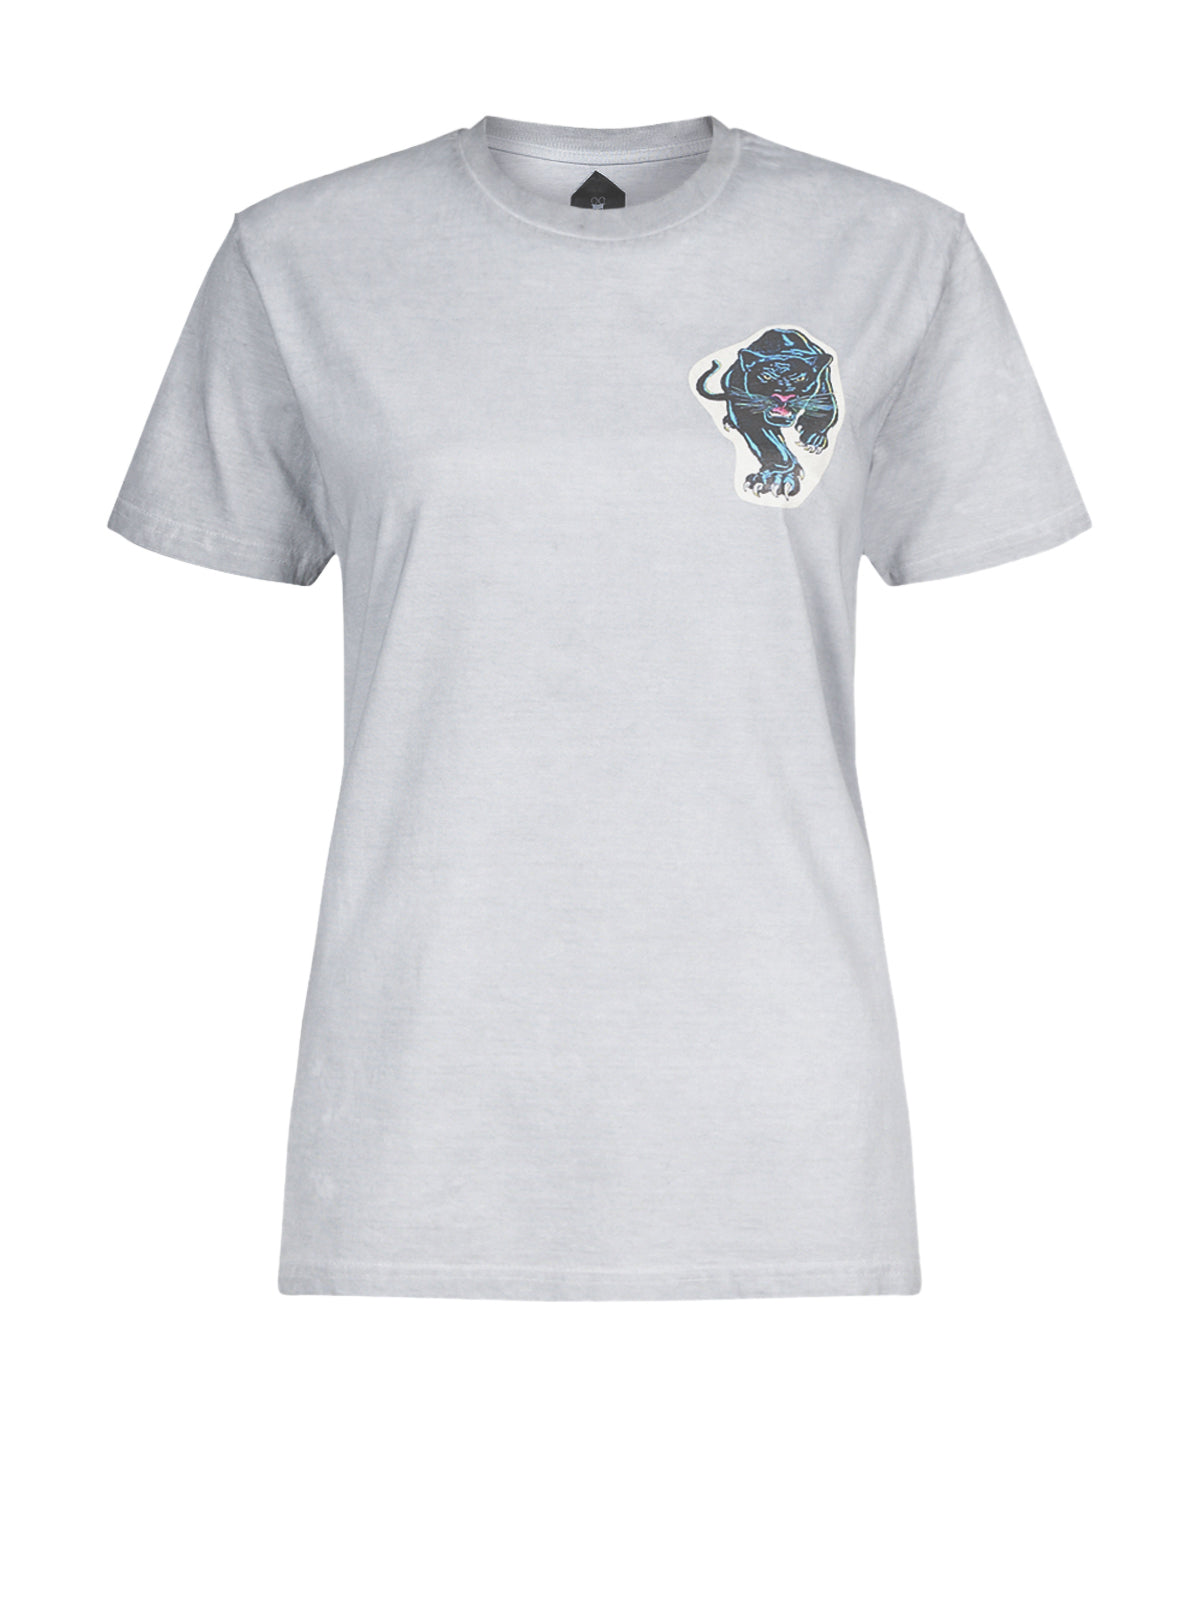 PANTHER T-SHIRT GREY